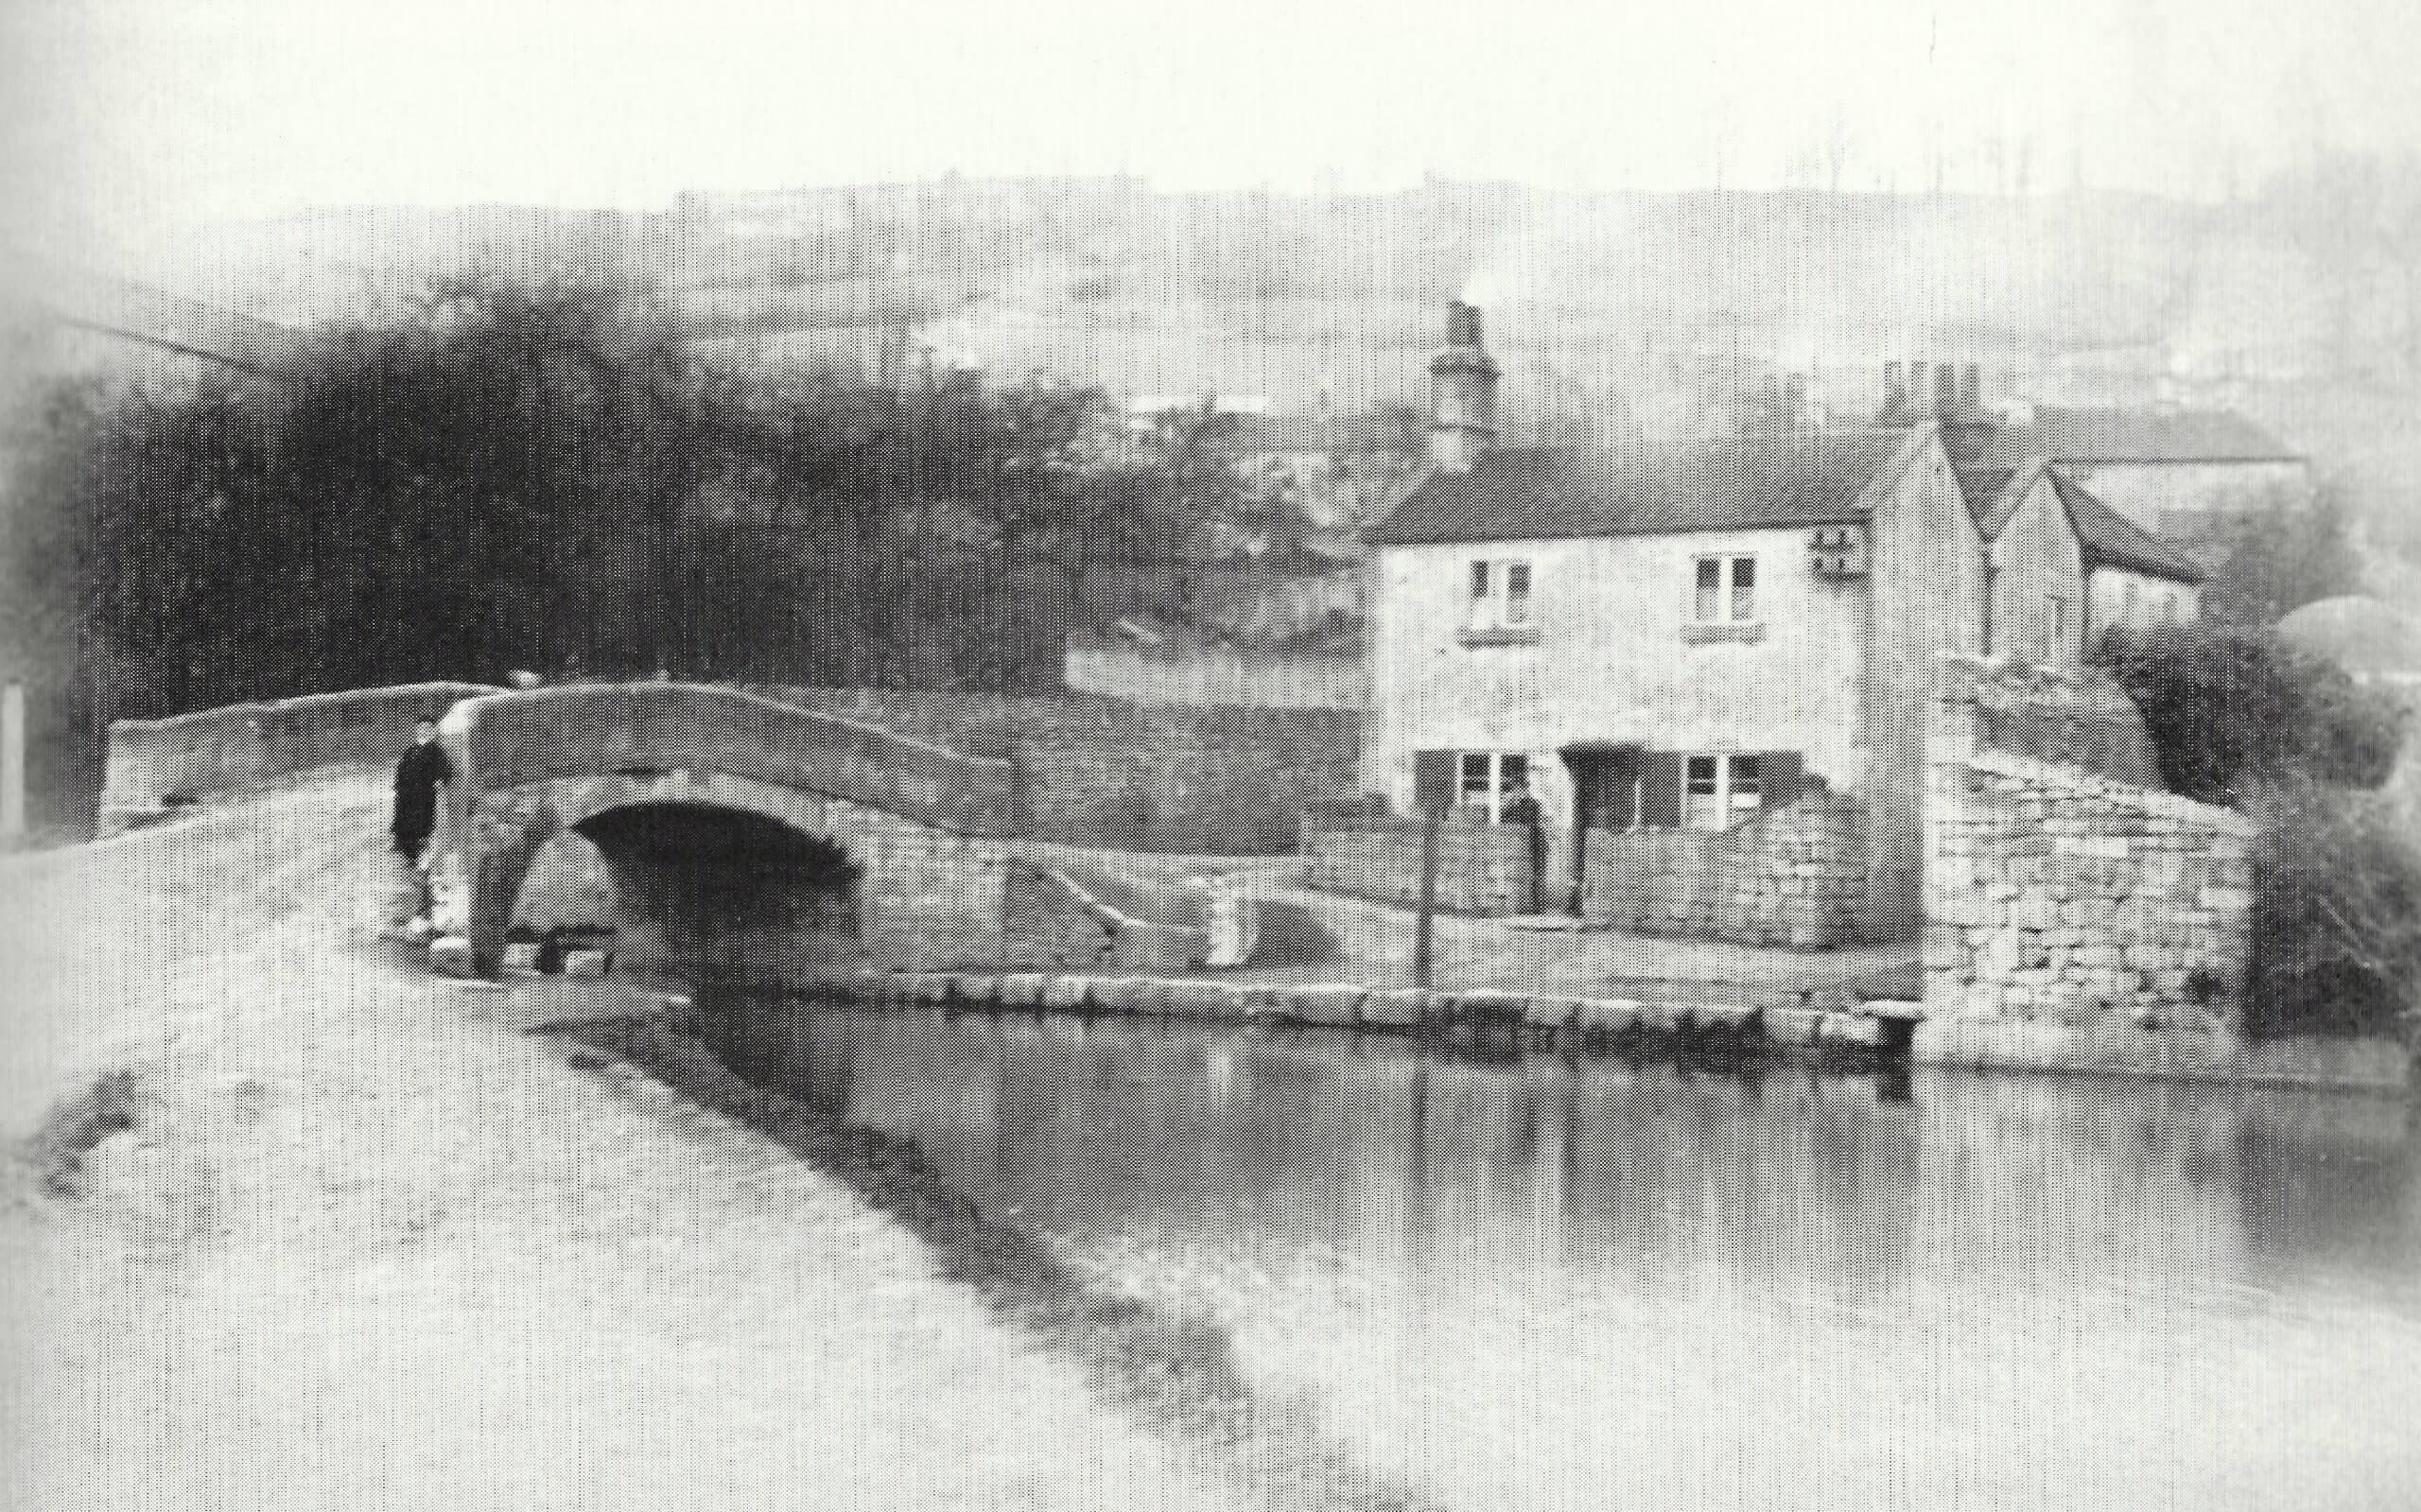 Mill Lane bridge, Monkton Combe about 1890